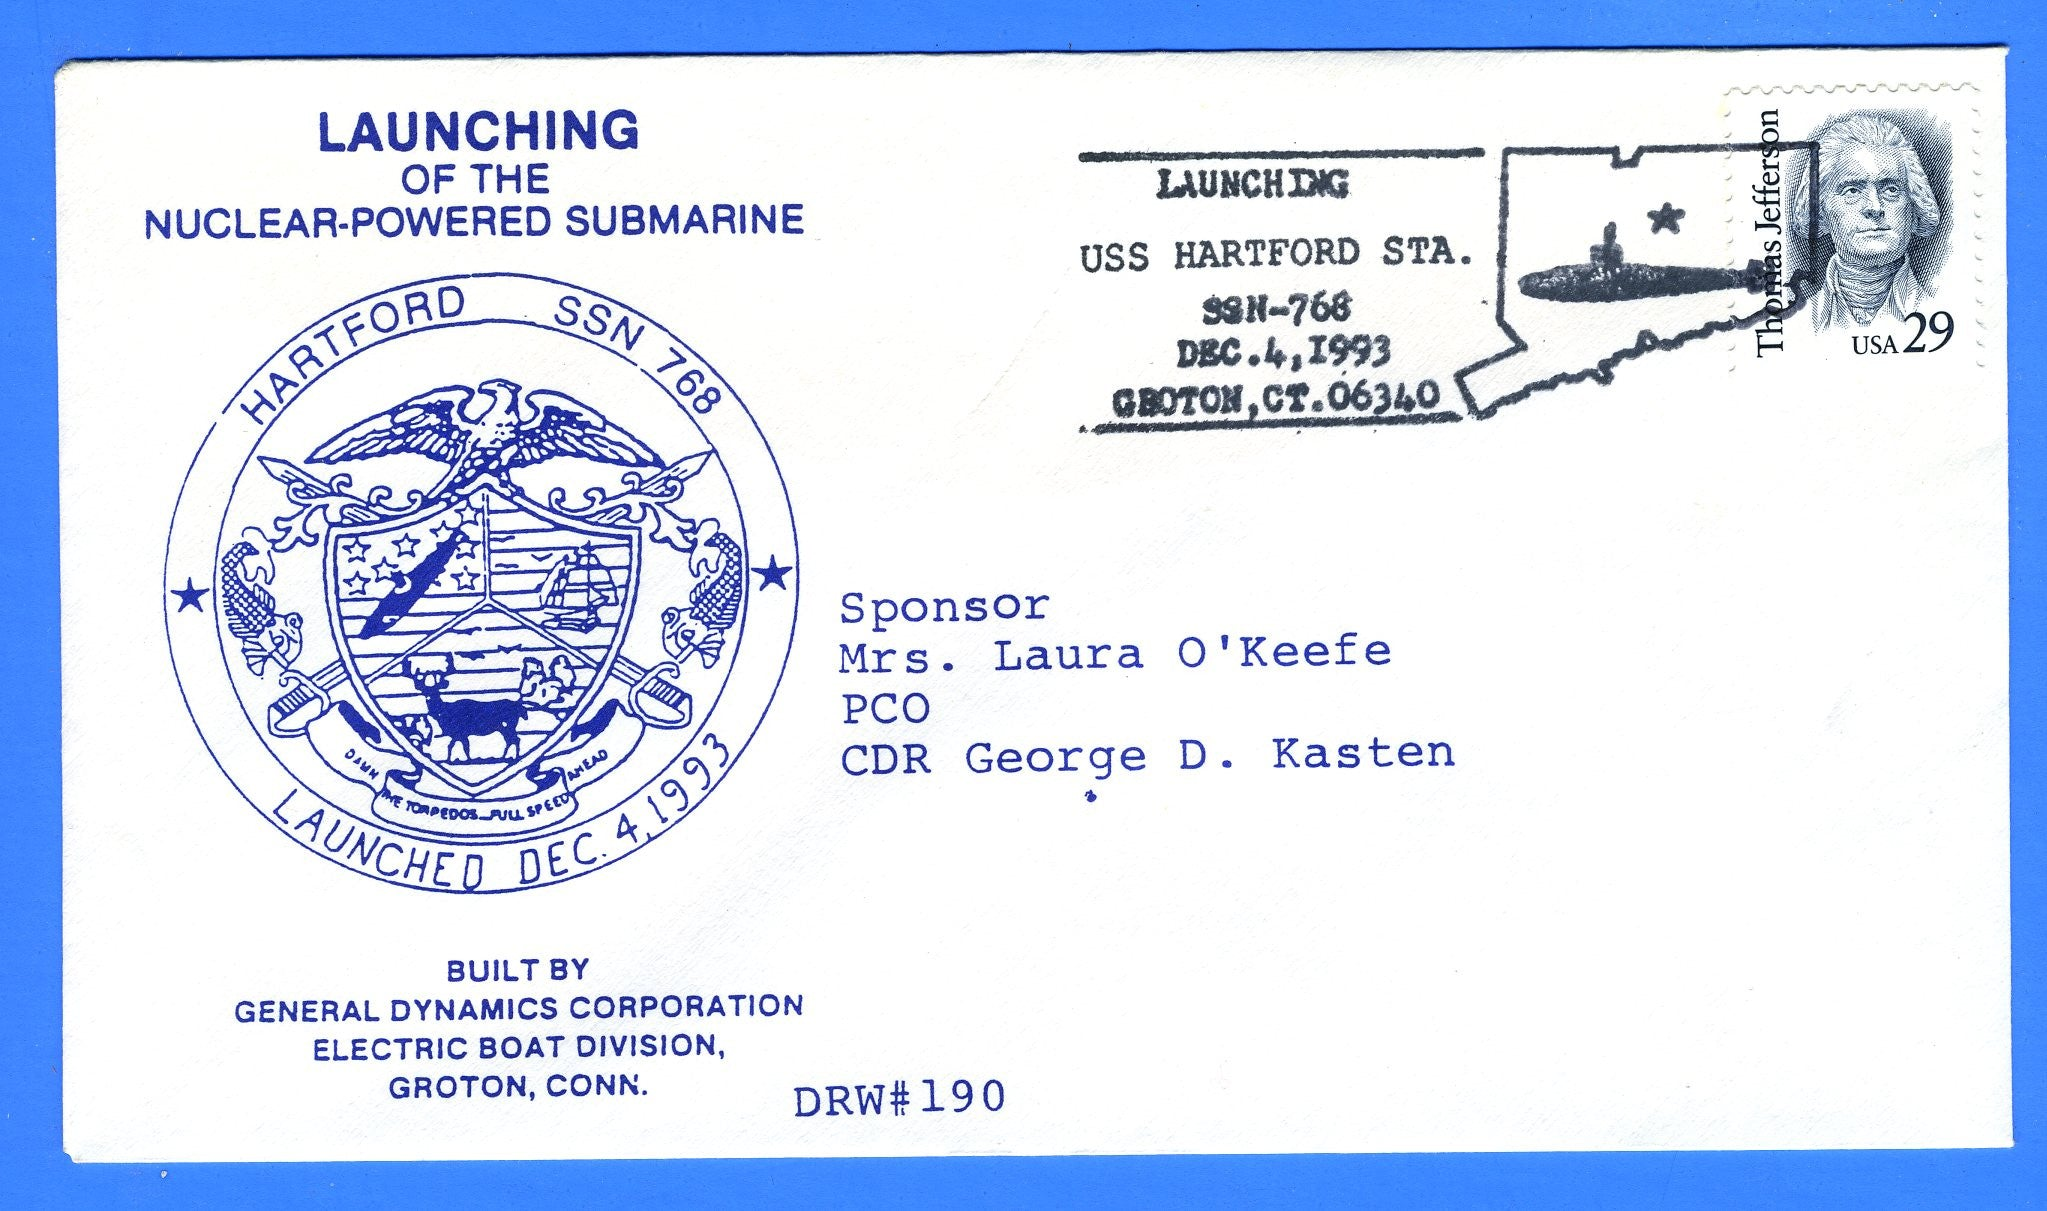 USS Hartford SSN-768 Launched December 4, 1993 - DRW 190